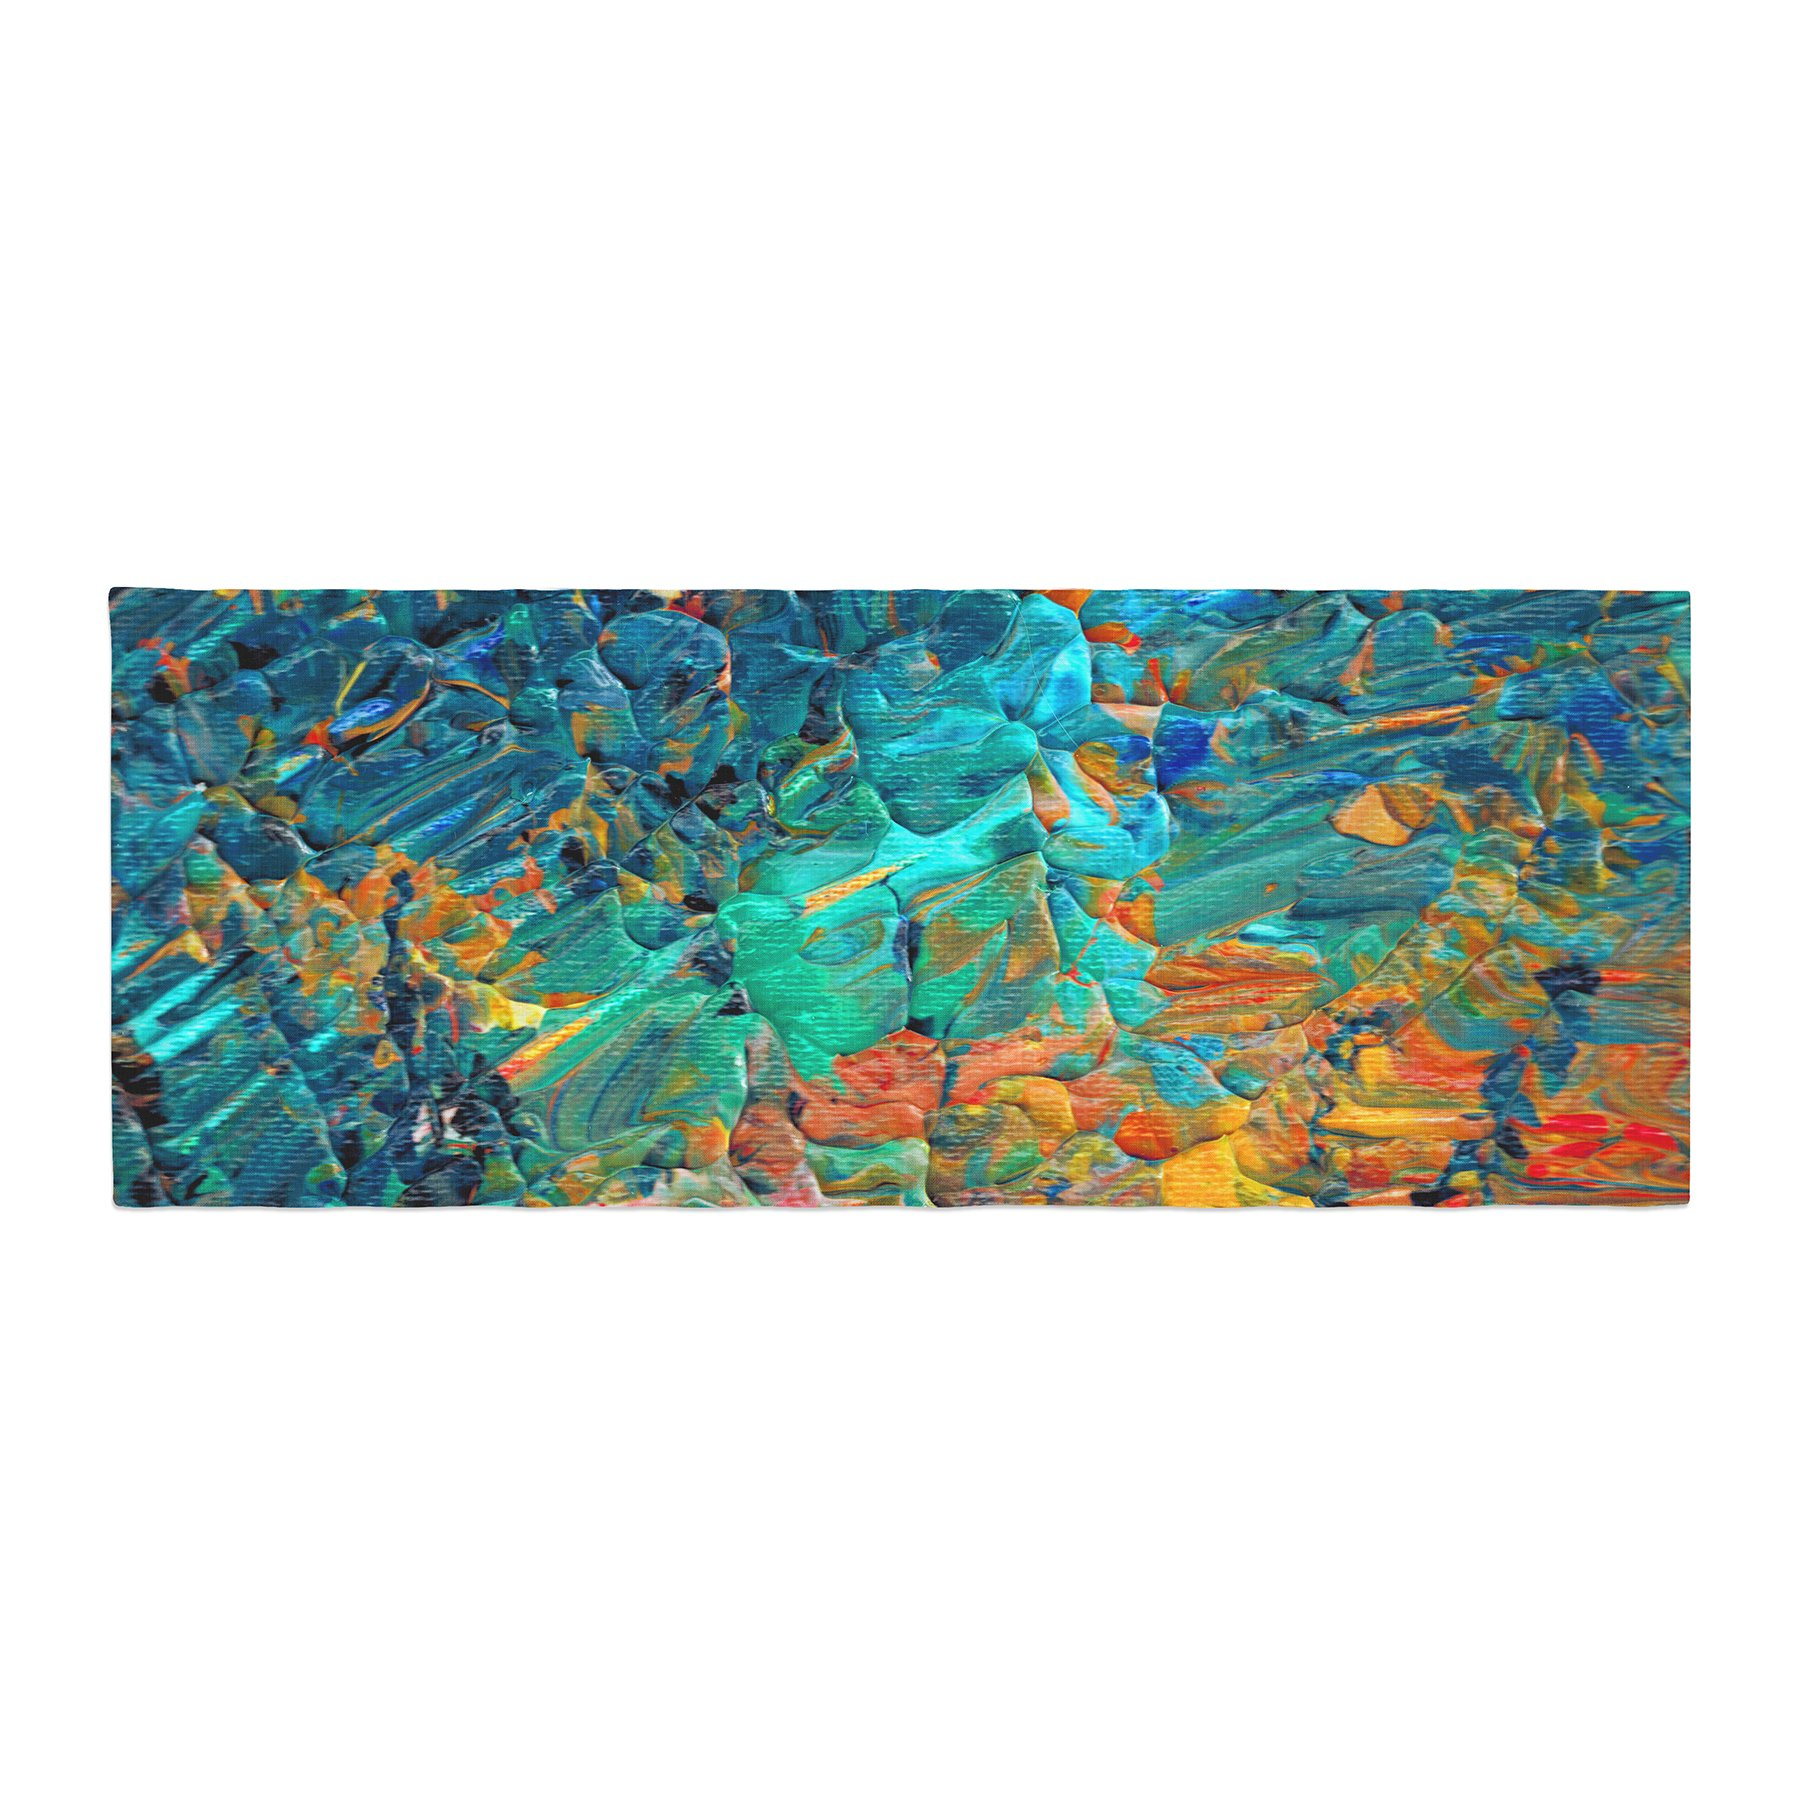 Kess InHouse Ebi Emporium Eteranl Tide II Teal Orange Bed Runner, 34'' x 86''